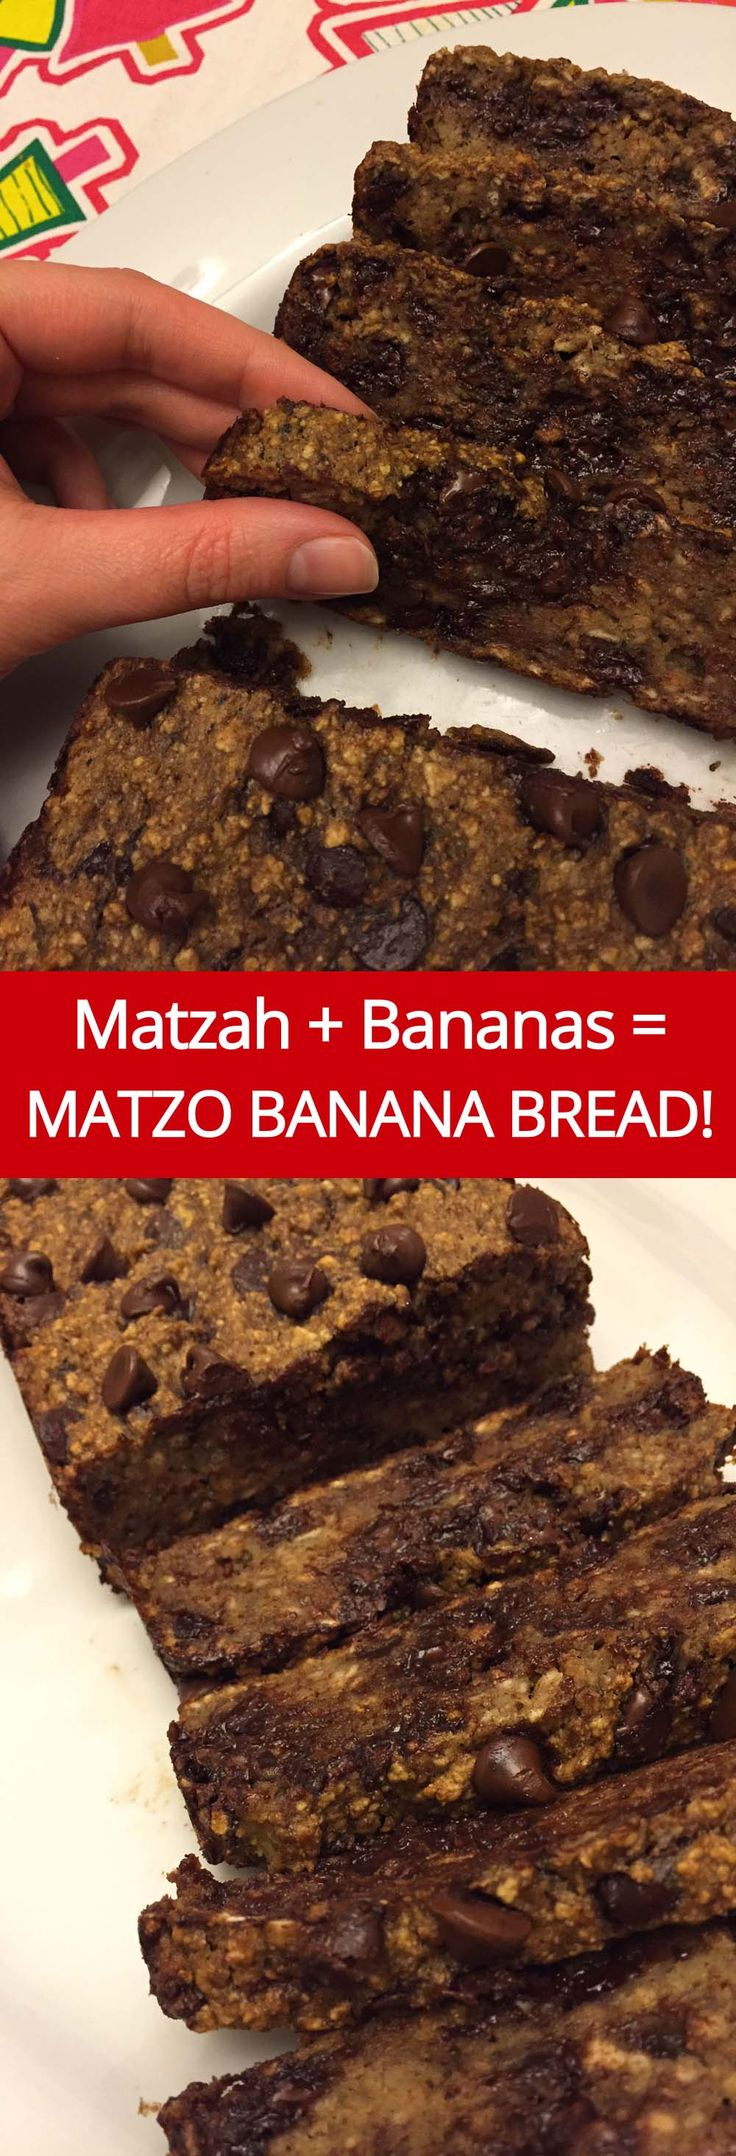 Matzo Meal Banana Bread Recipe from MelanieCooks.com - Perfect For Passover!